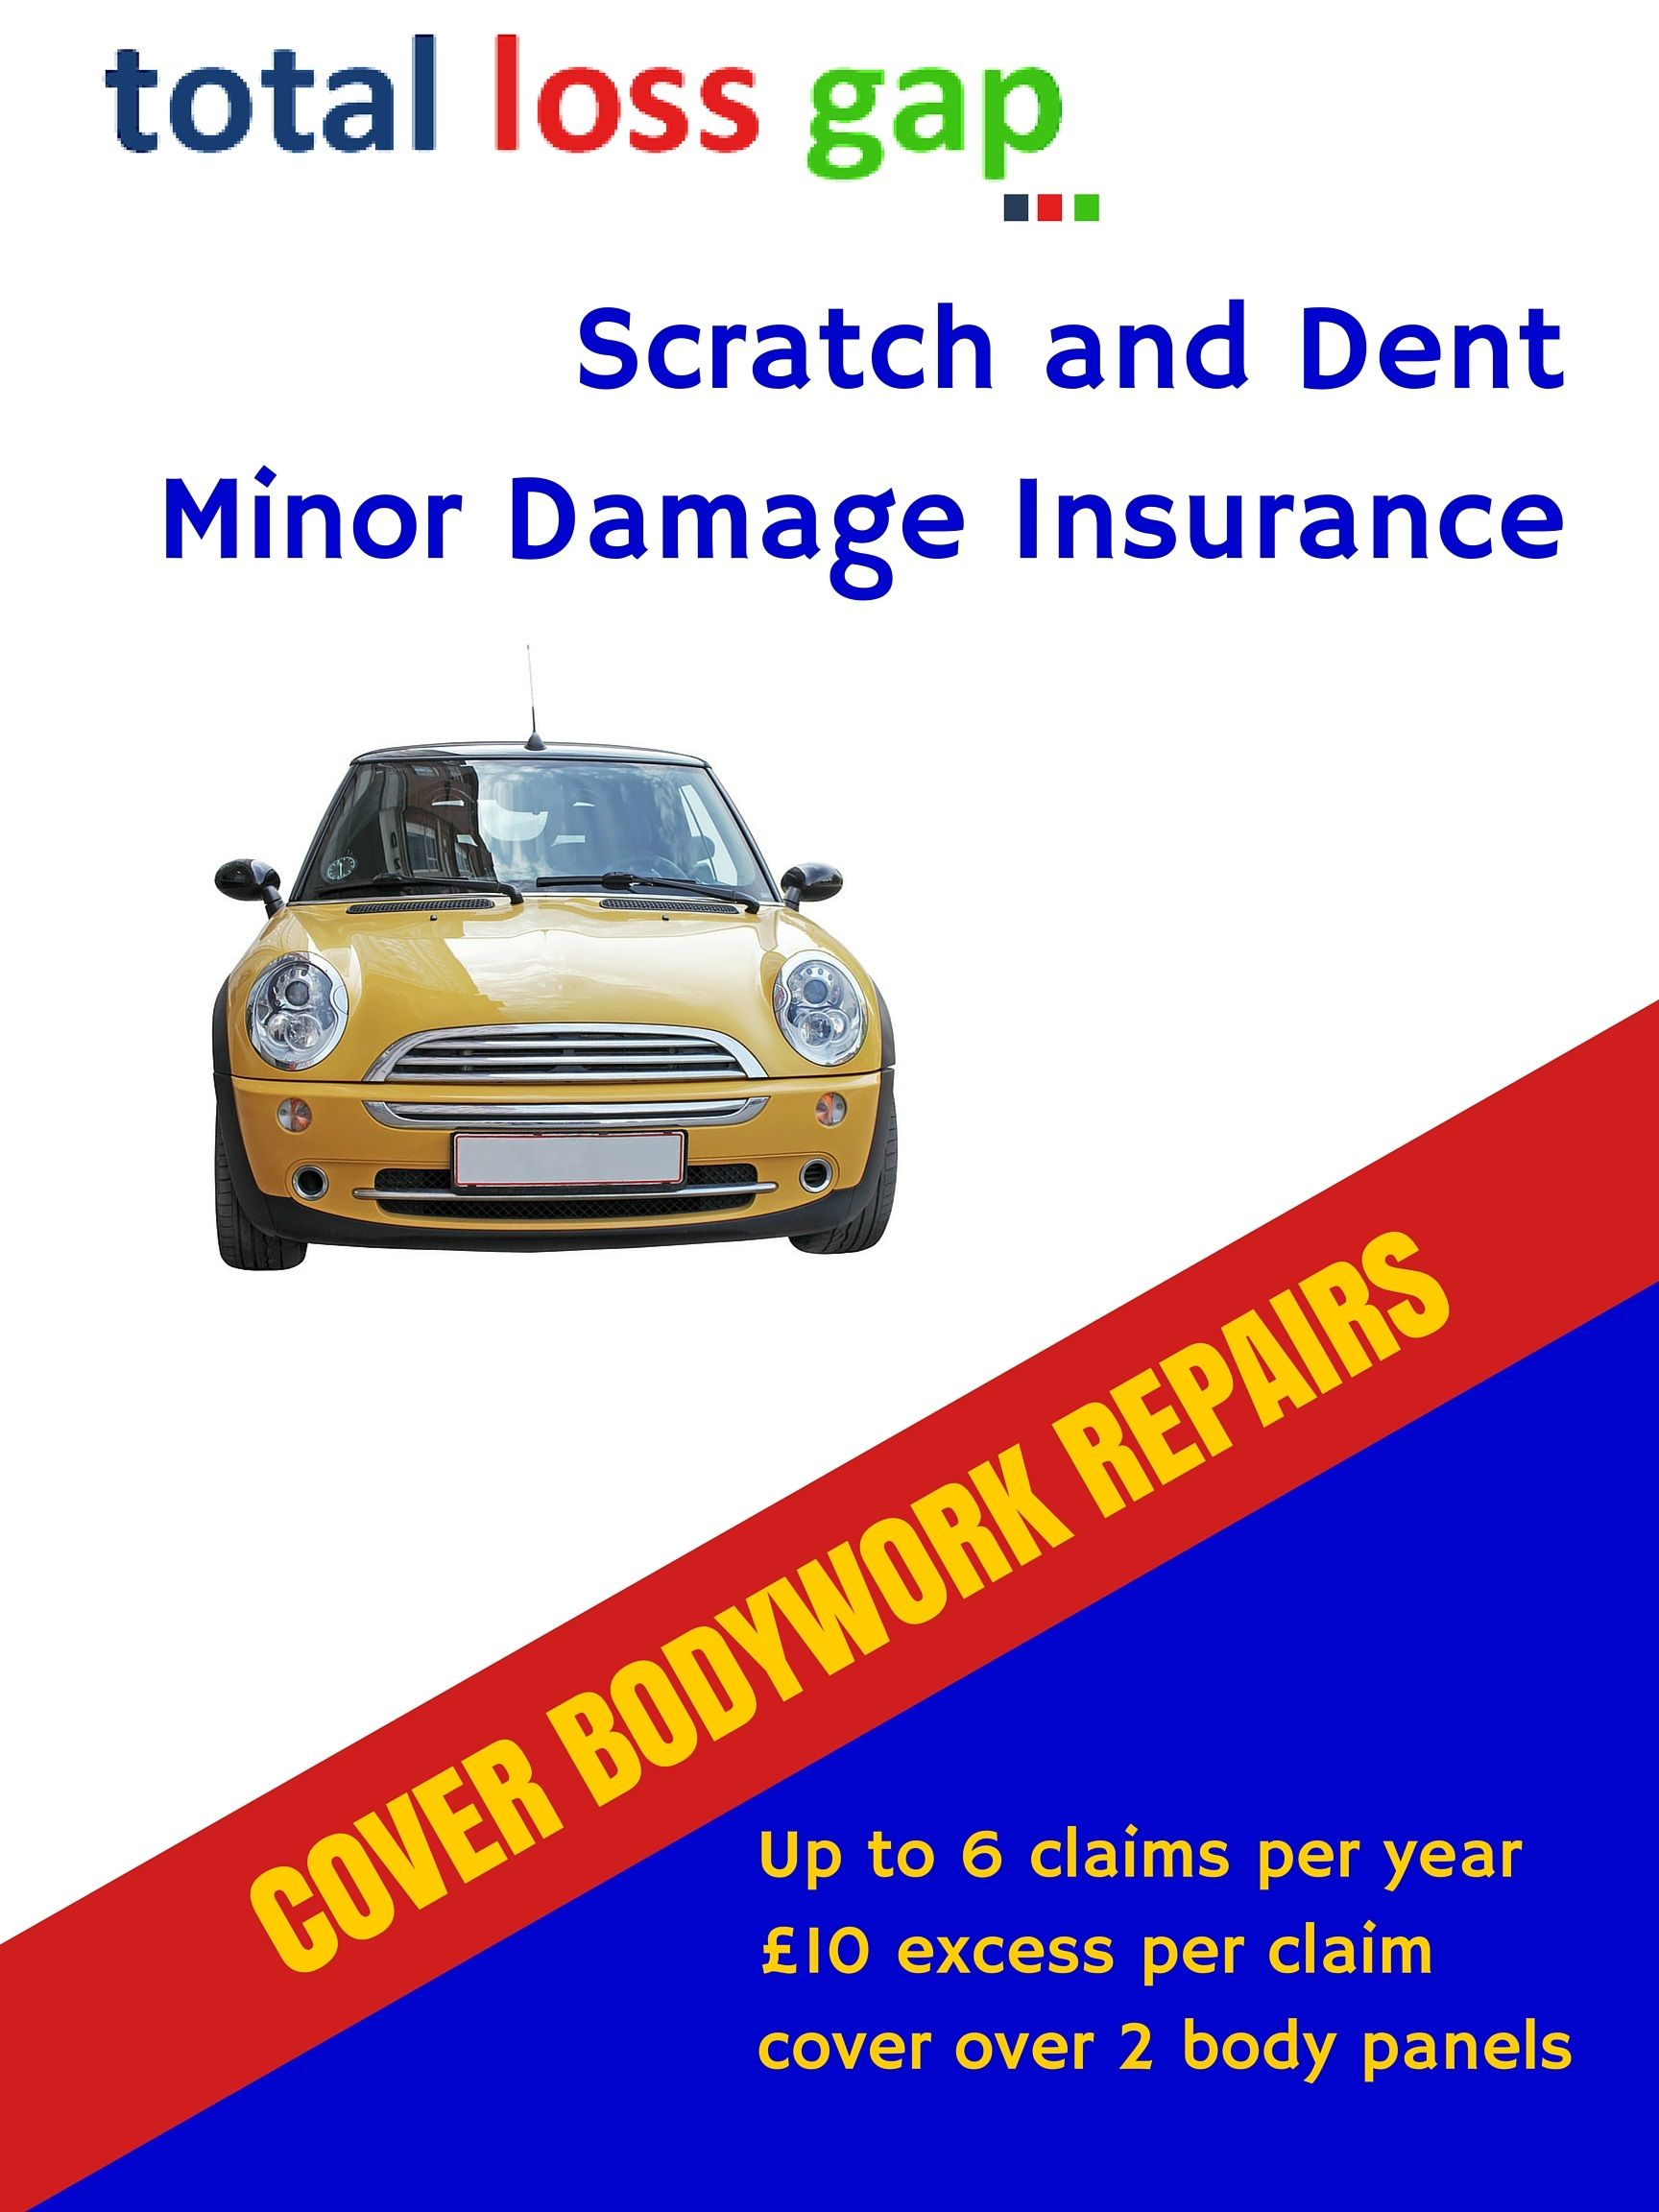 Scratch and dent insurance from total loss gap to cover the costs of cosmetic repair of